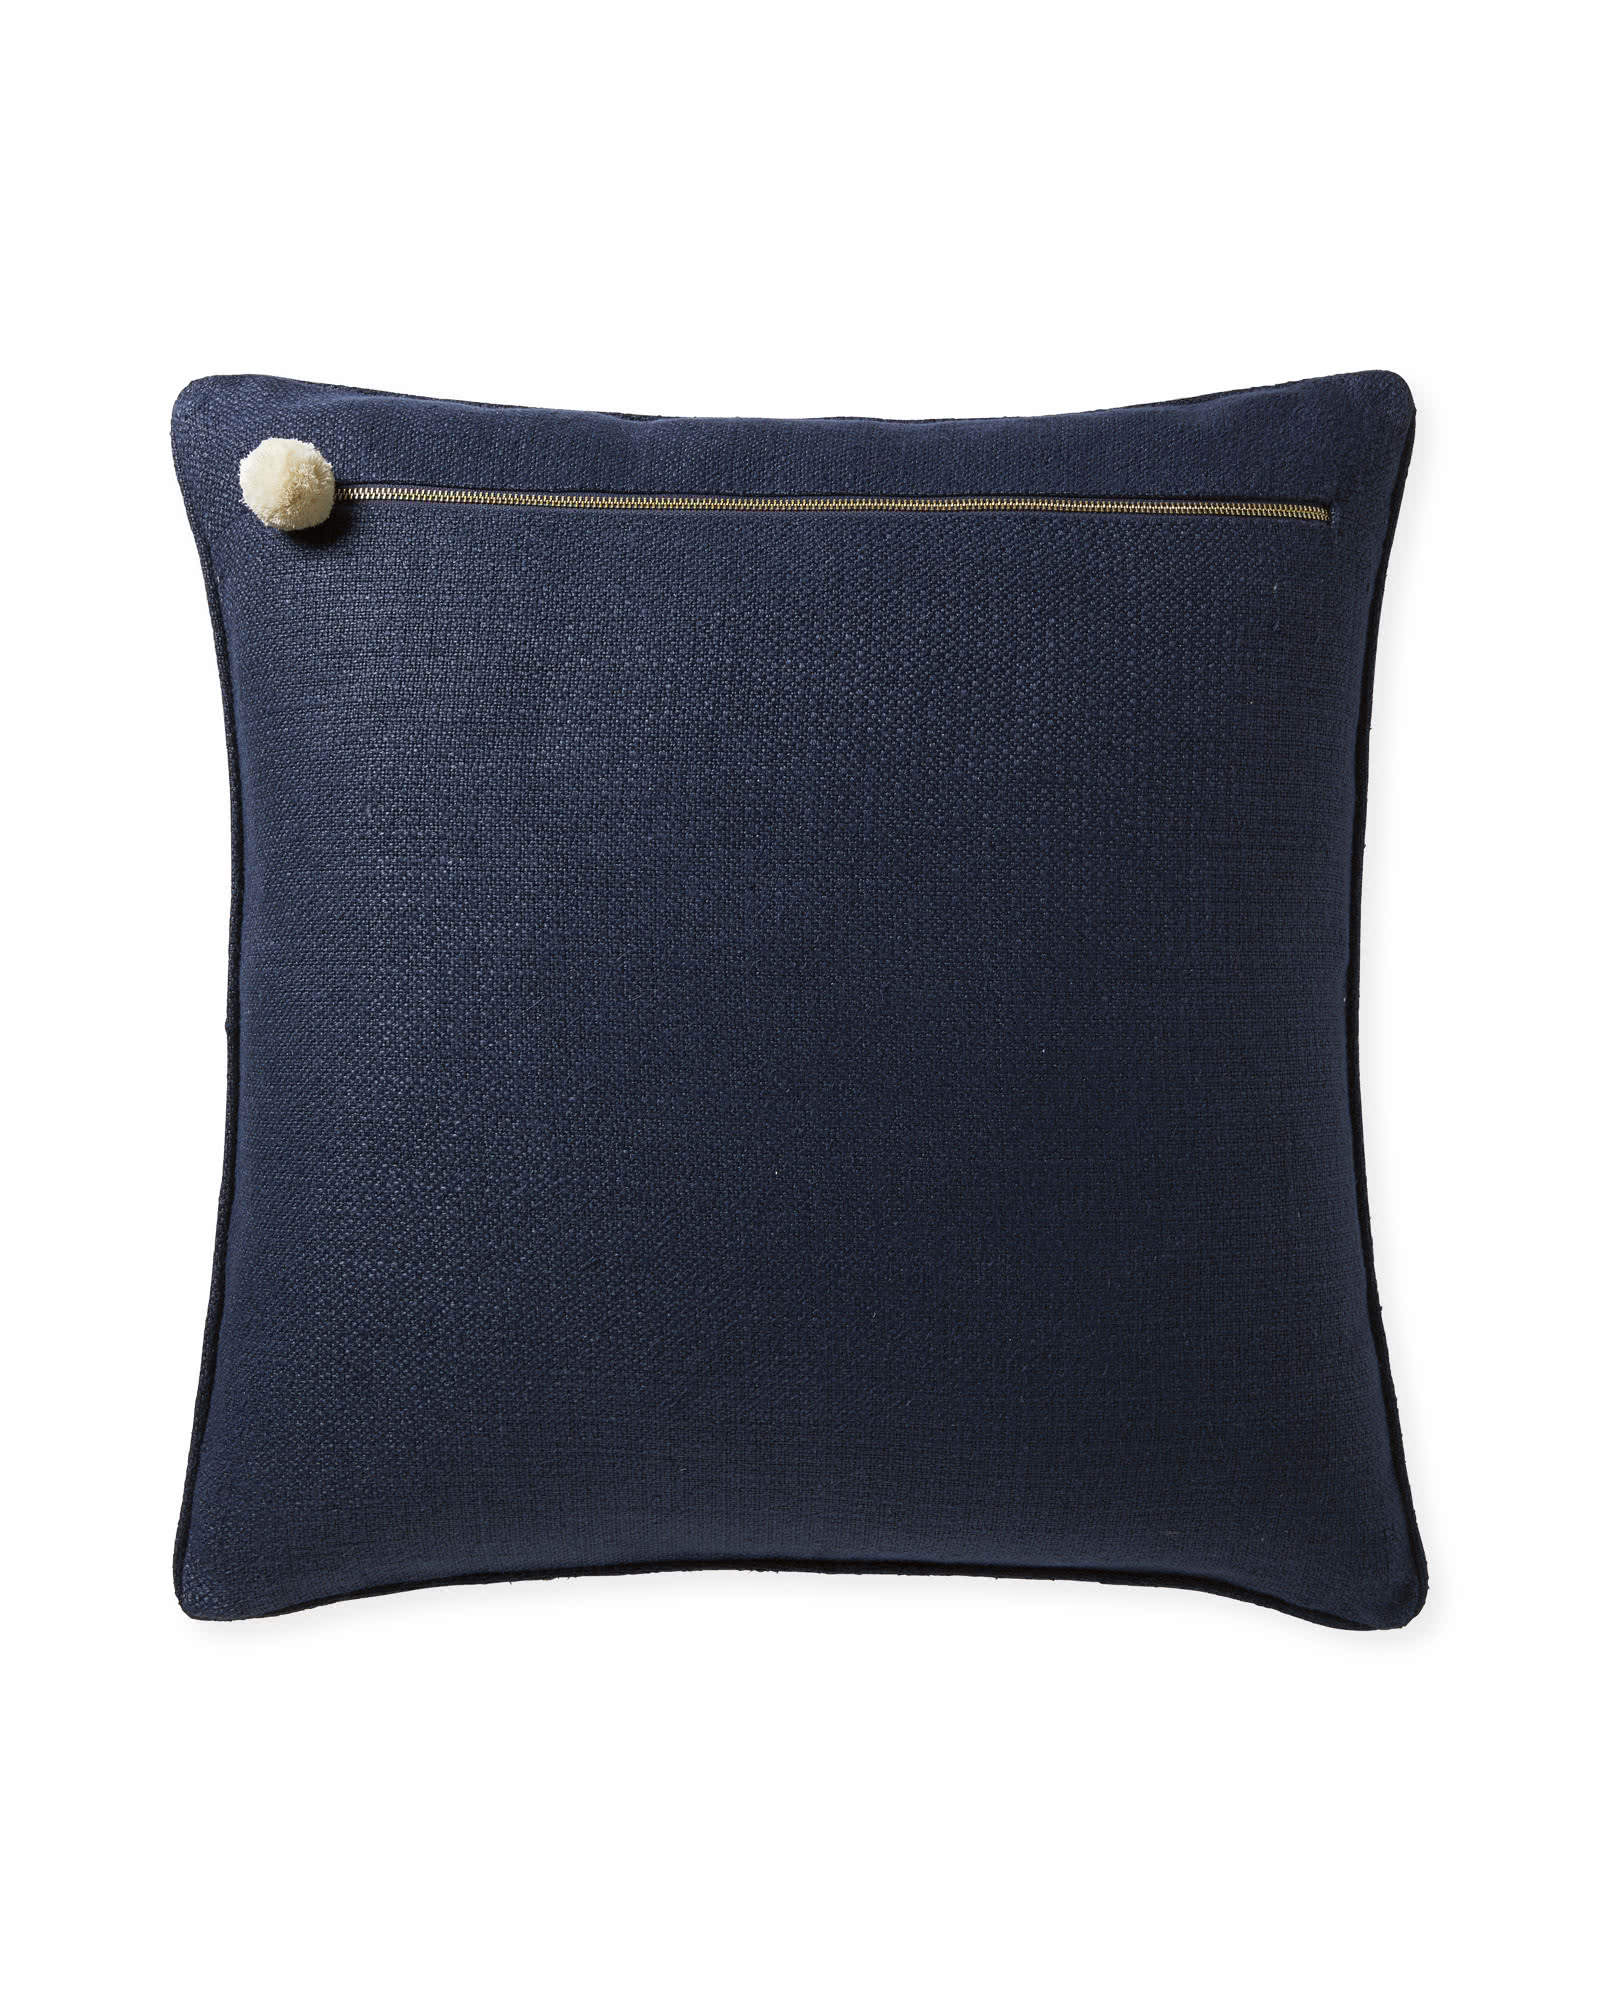 Brookings Pillow Cover, Navy